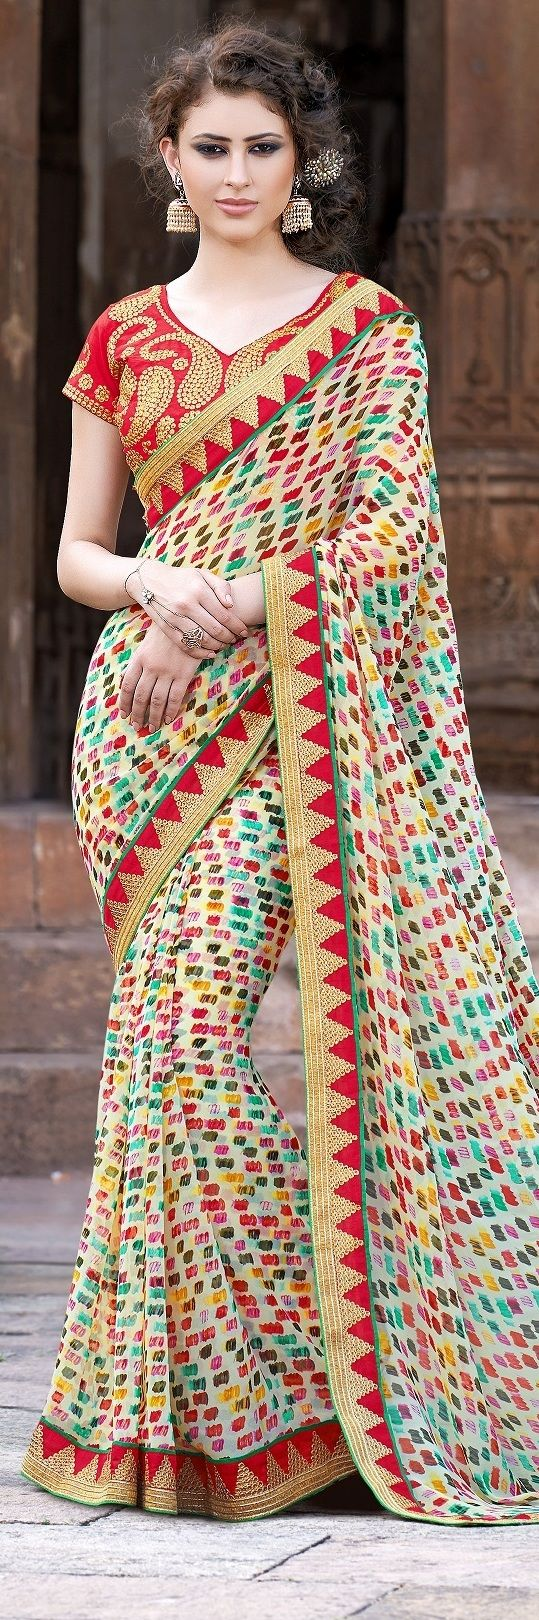 Traditional Prints Border Fancy Party Wear Sarees traditional art, red border work in a beautiful design fancy sarees, with red unstitched heay work blouse.